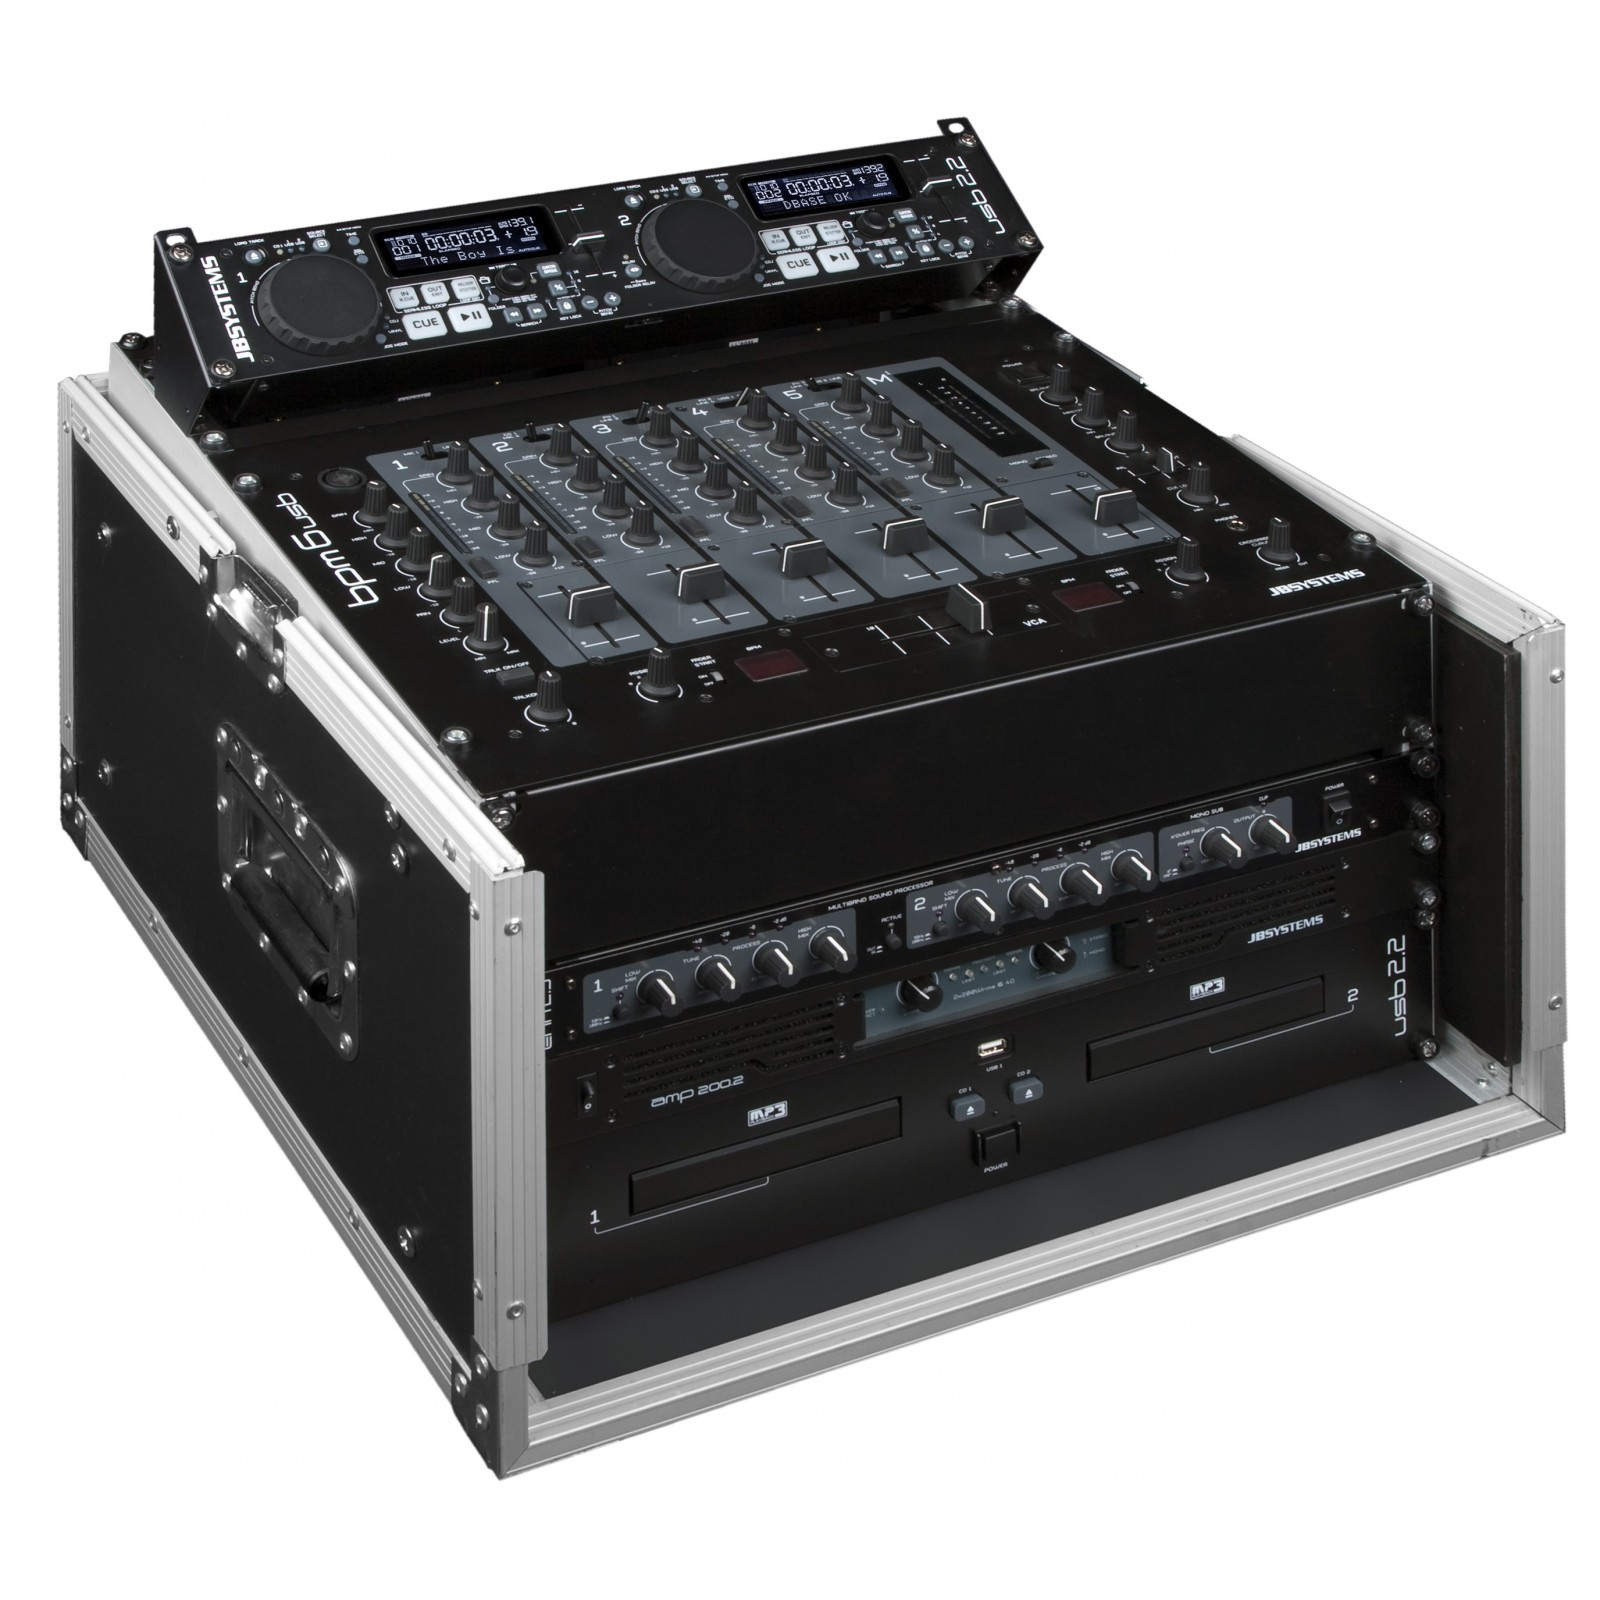 Jb Systems Dj Case 10 6u